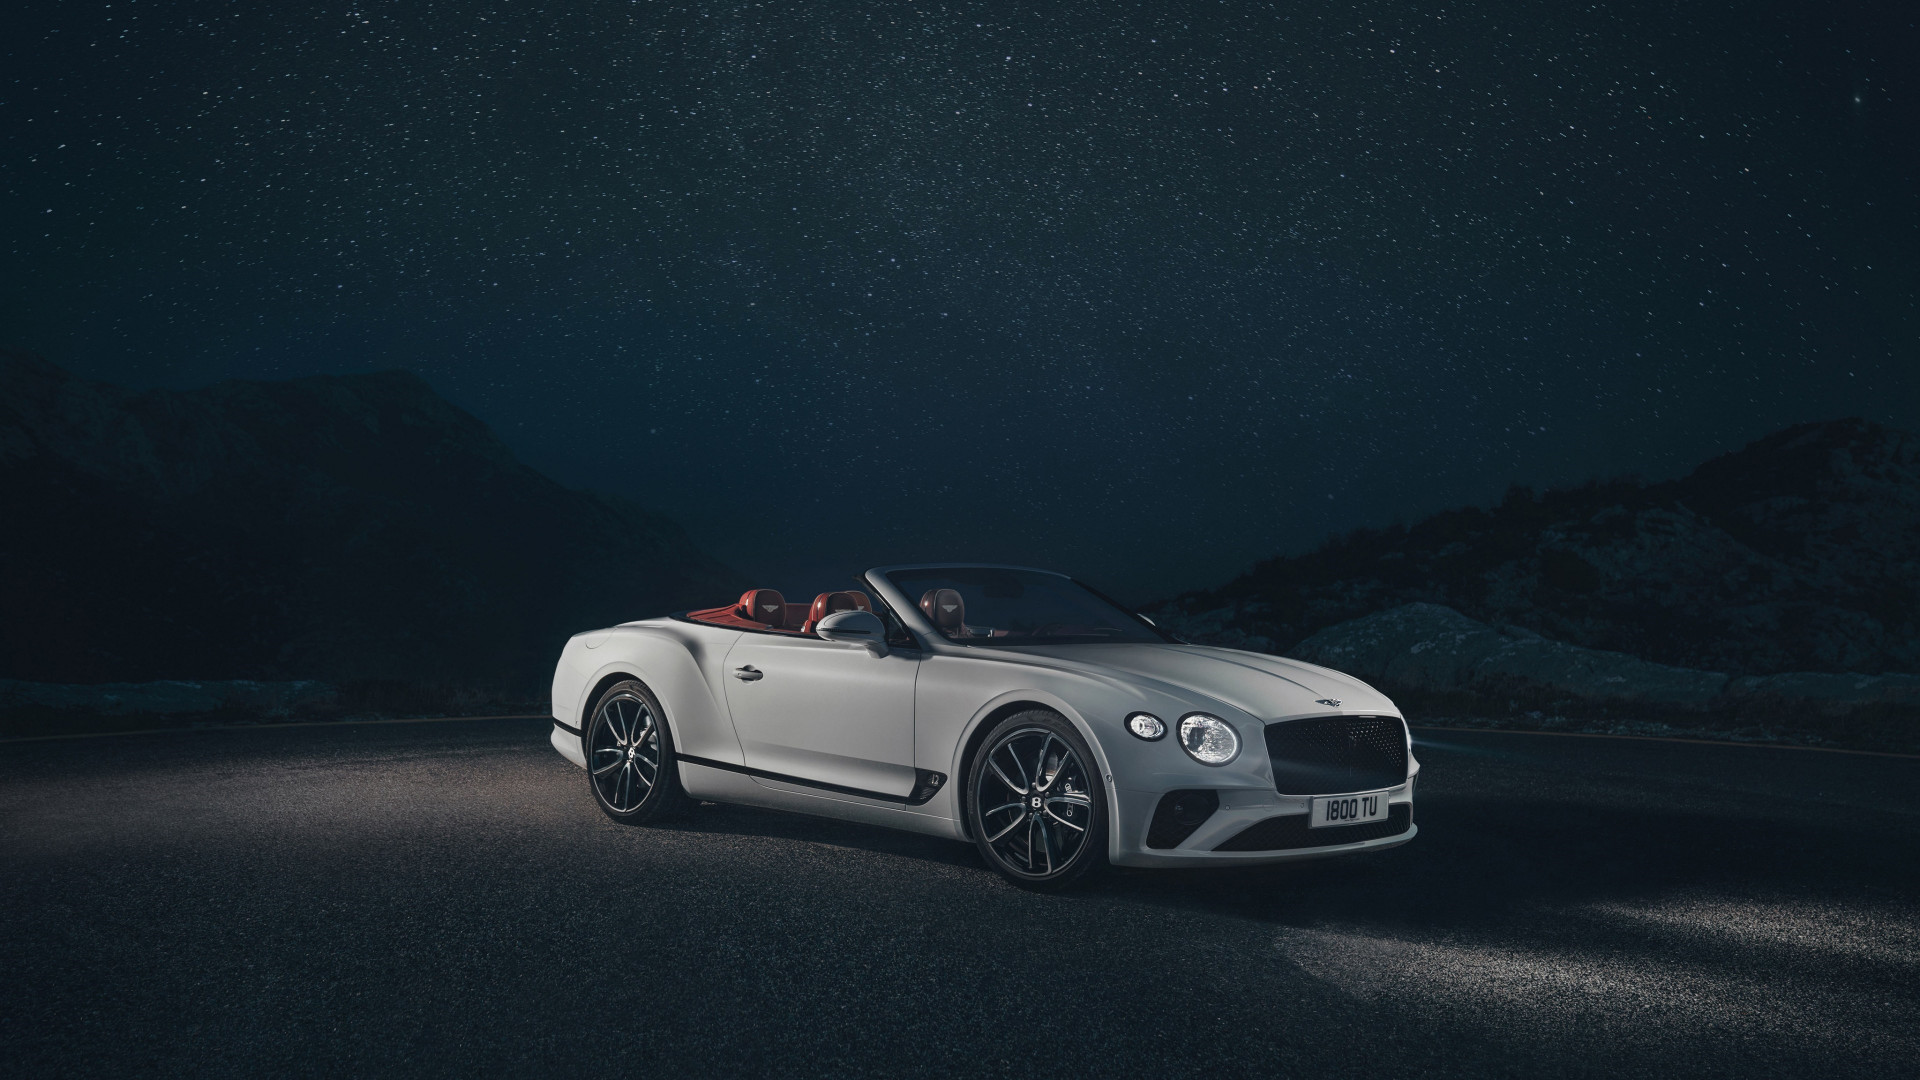 Bentley Continental GT | 1920x1080 wallpaper